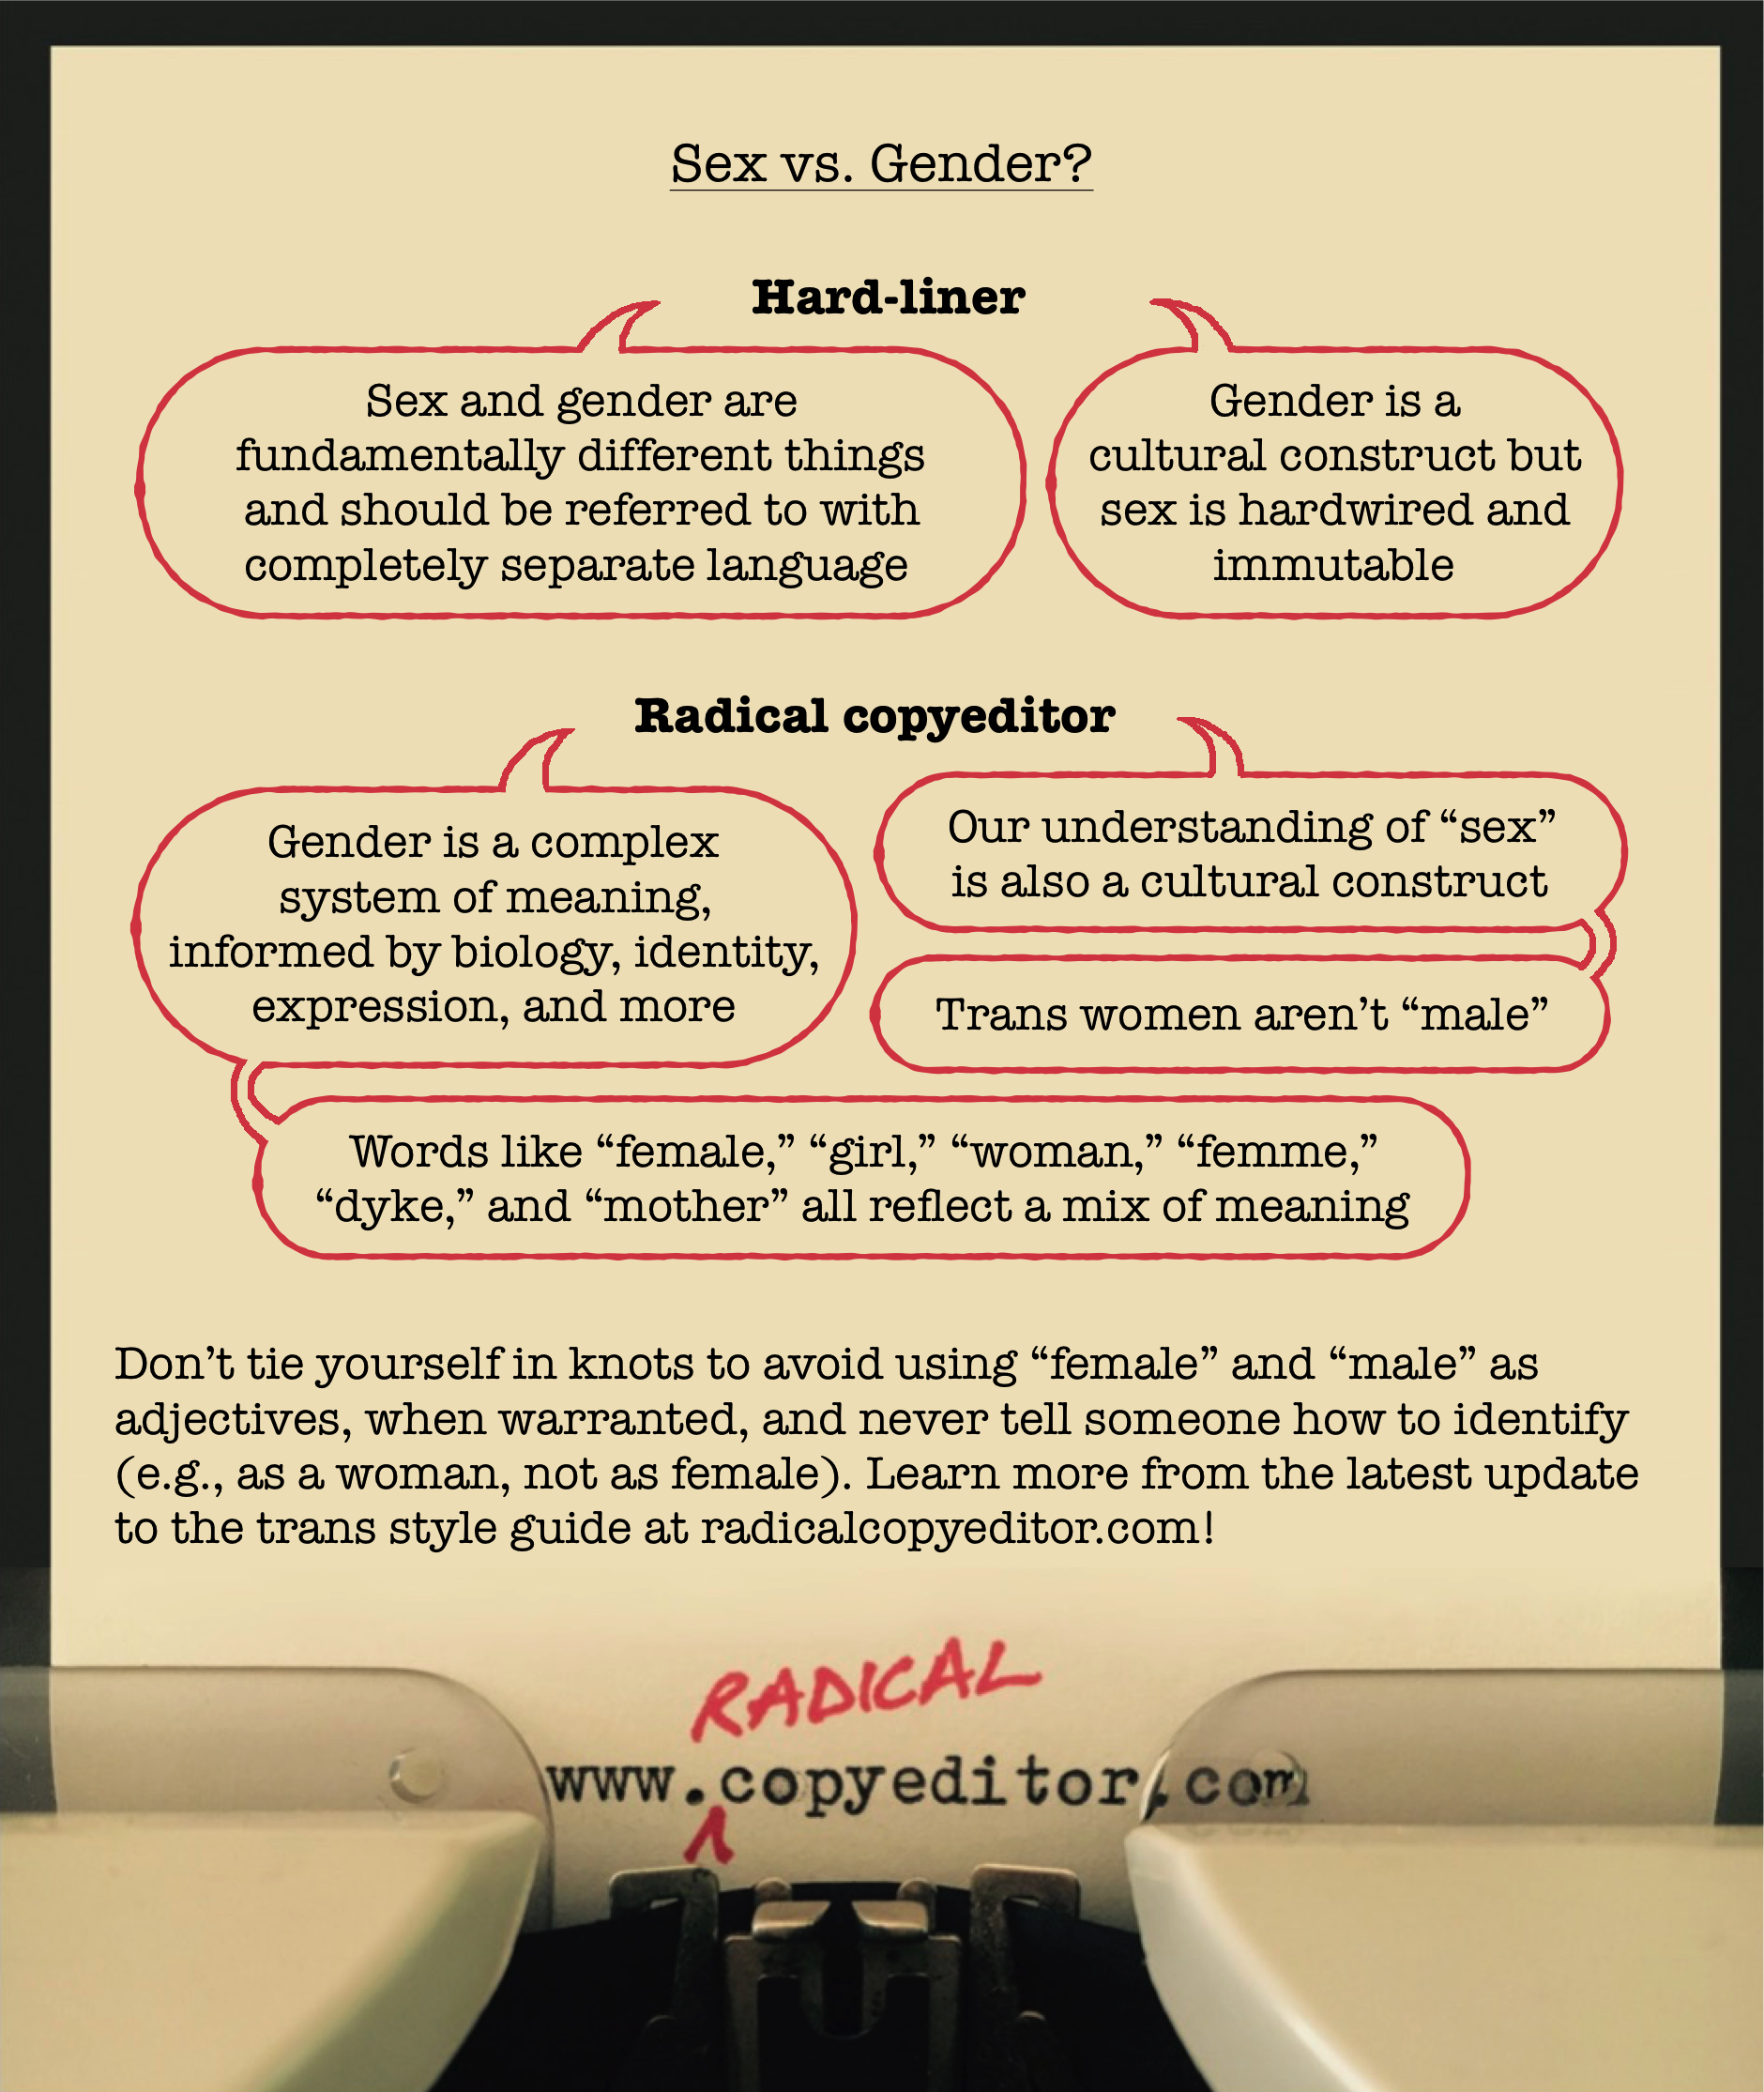 Sex vs. gender? Speech bubbles contrast between the approach of the hard-liner vs. the radical copyeditor